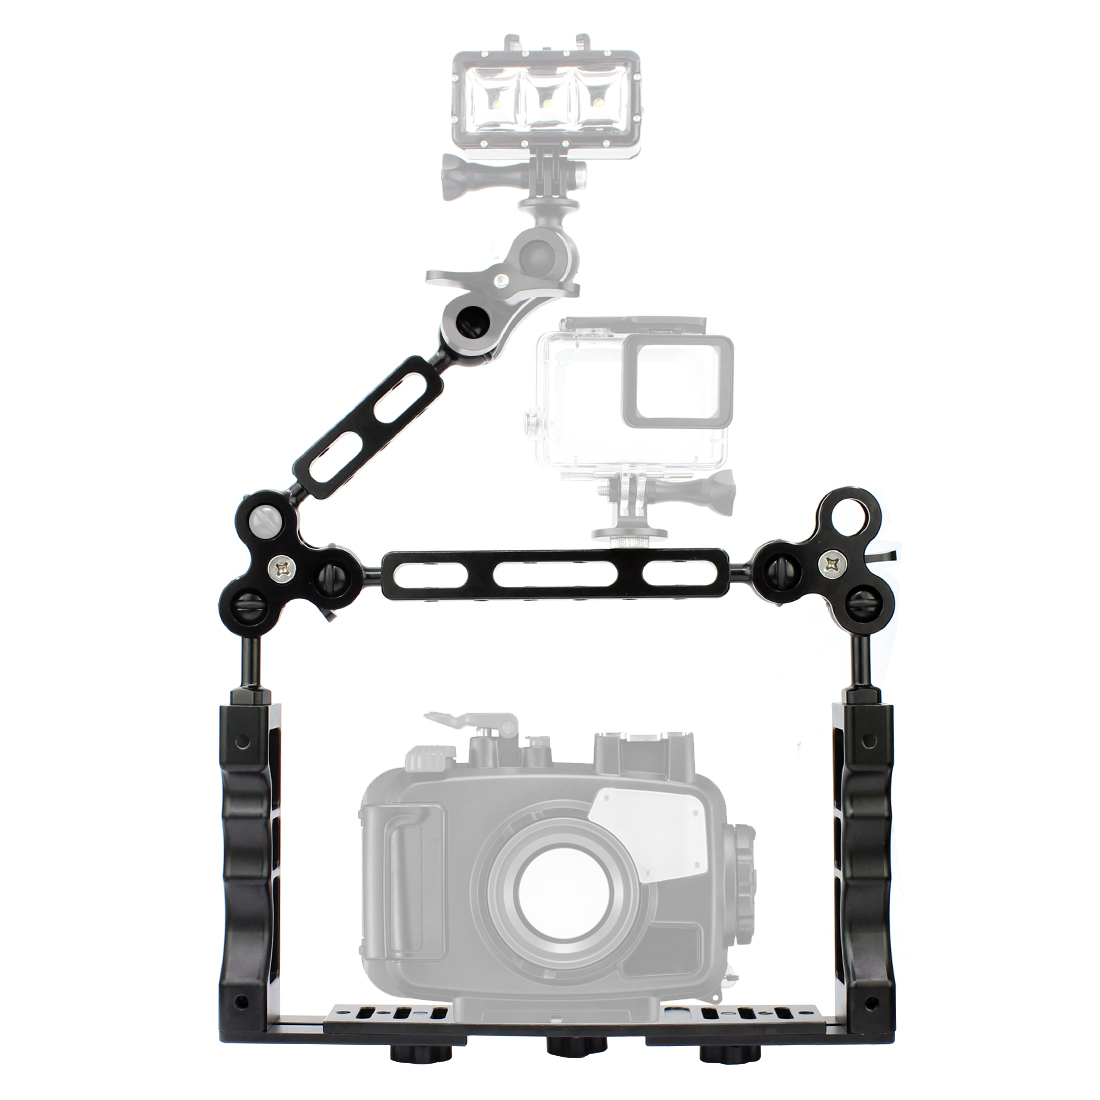 Aluminum Handheld Handle Hand Grip Stabilizer Rig Underwater Scuba Diving Stabilizer Tray Mount For Video Gopro DSLR Cam